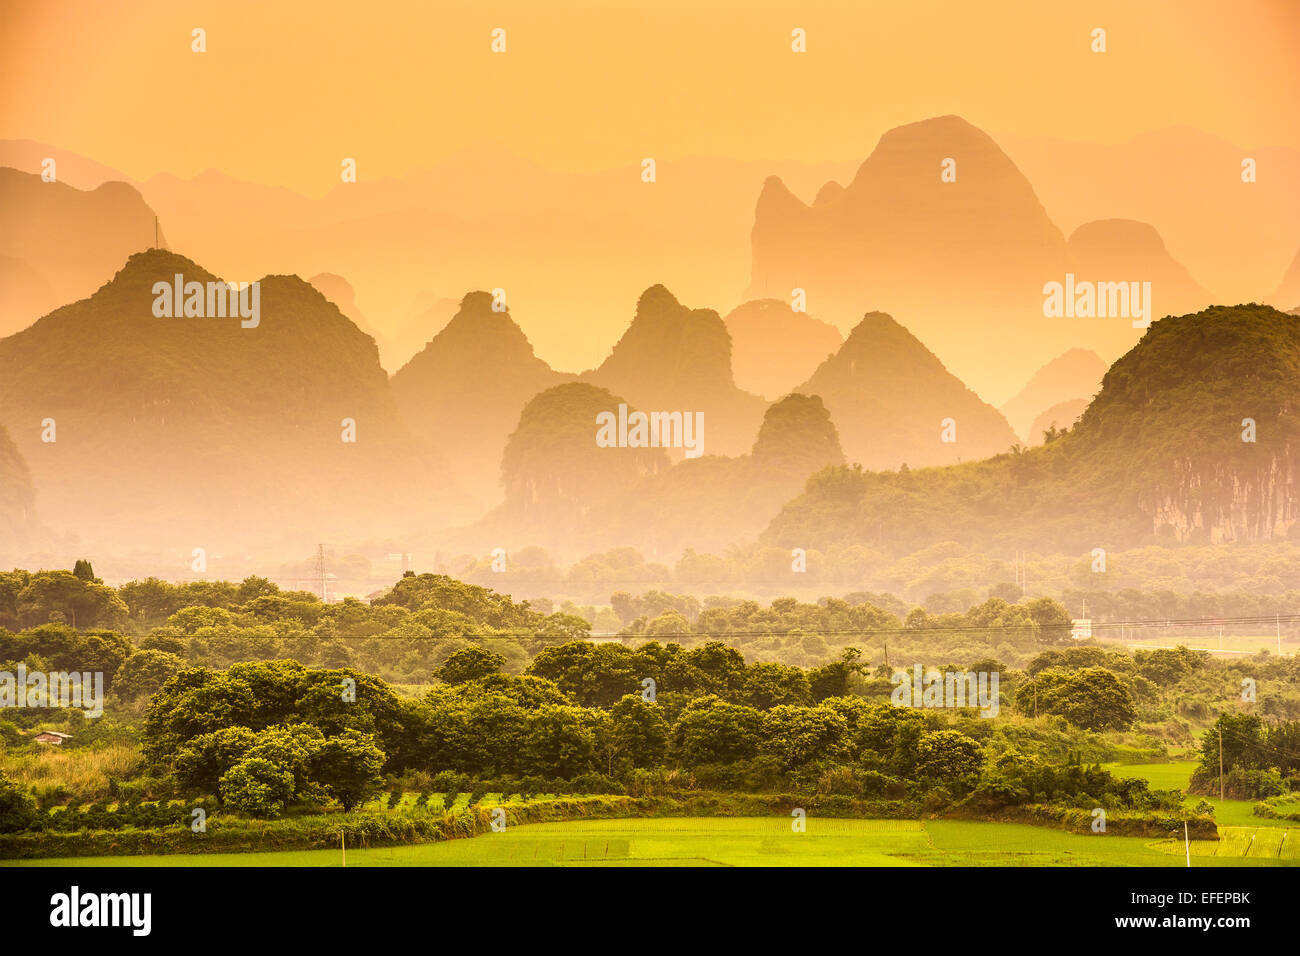 Karst Mountains of Guilin, China. - Stock Image